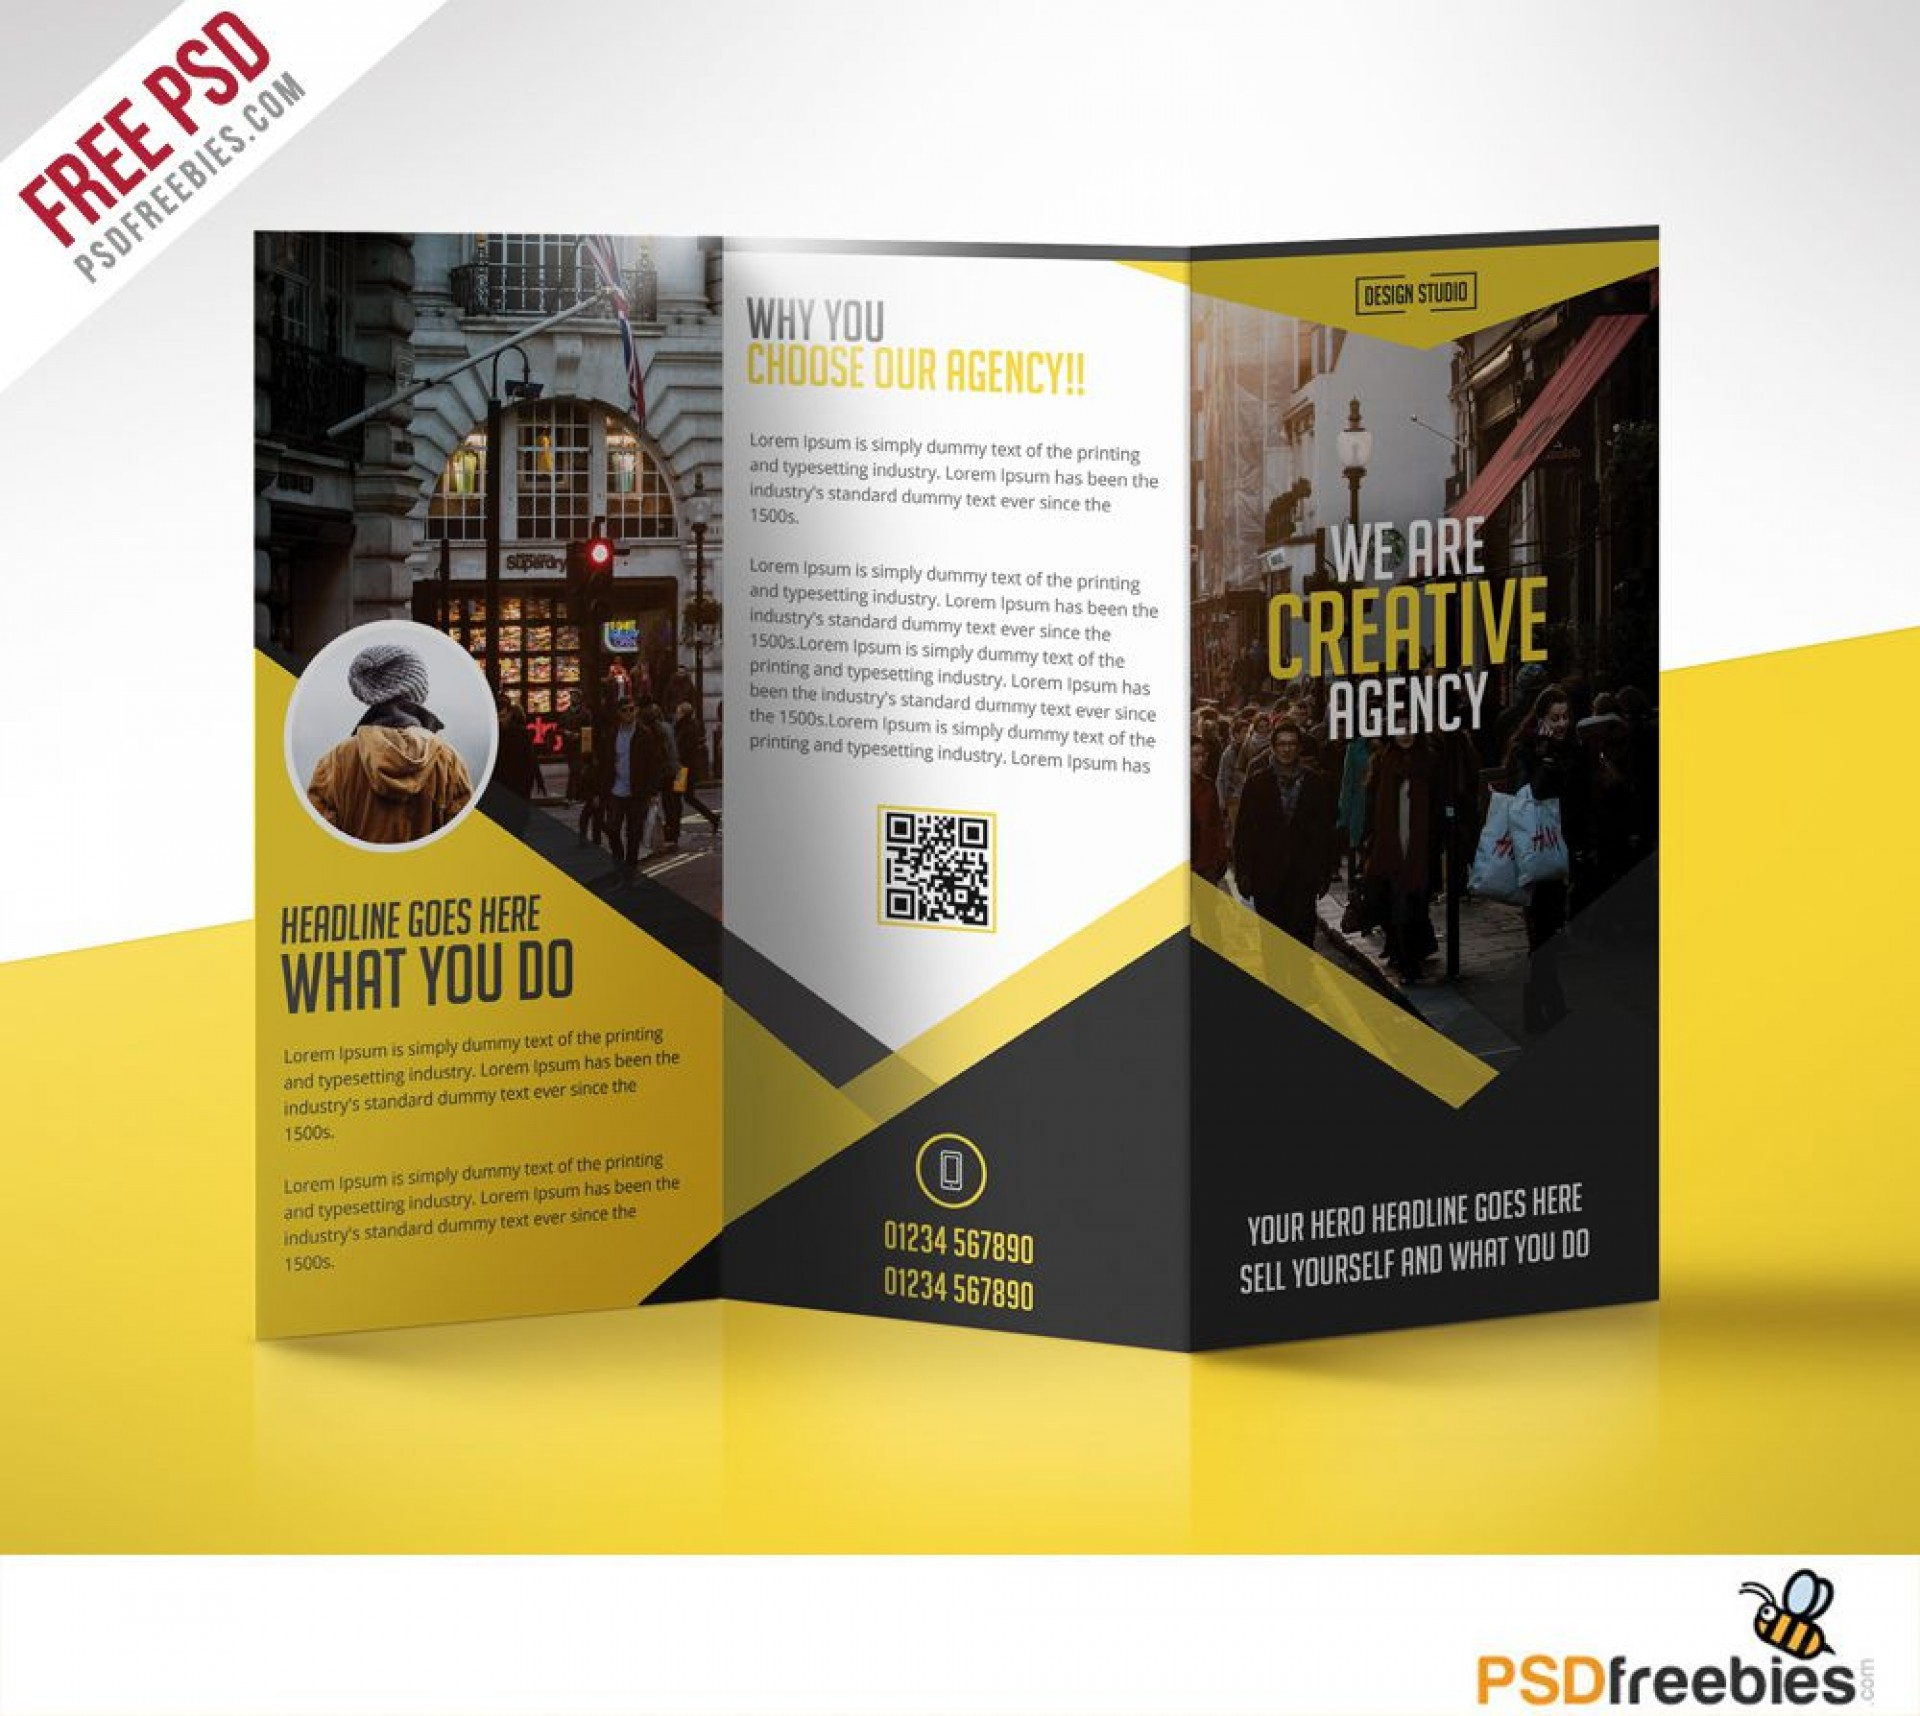 006 Beautiful Tri Fold Menu Template Free High Def  Wedding Tri-fold Restaurant Food Psd Brochure Cafe Download1920